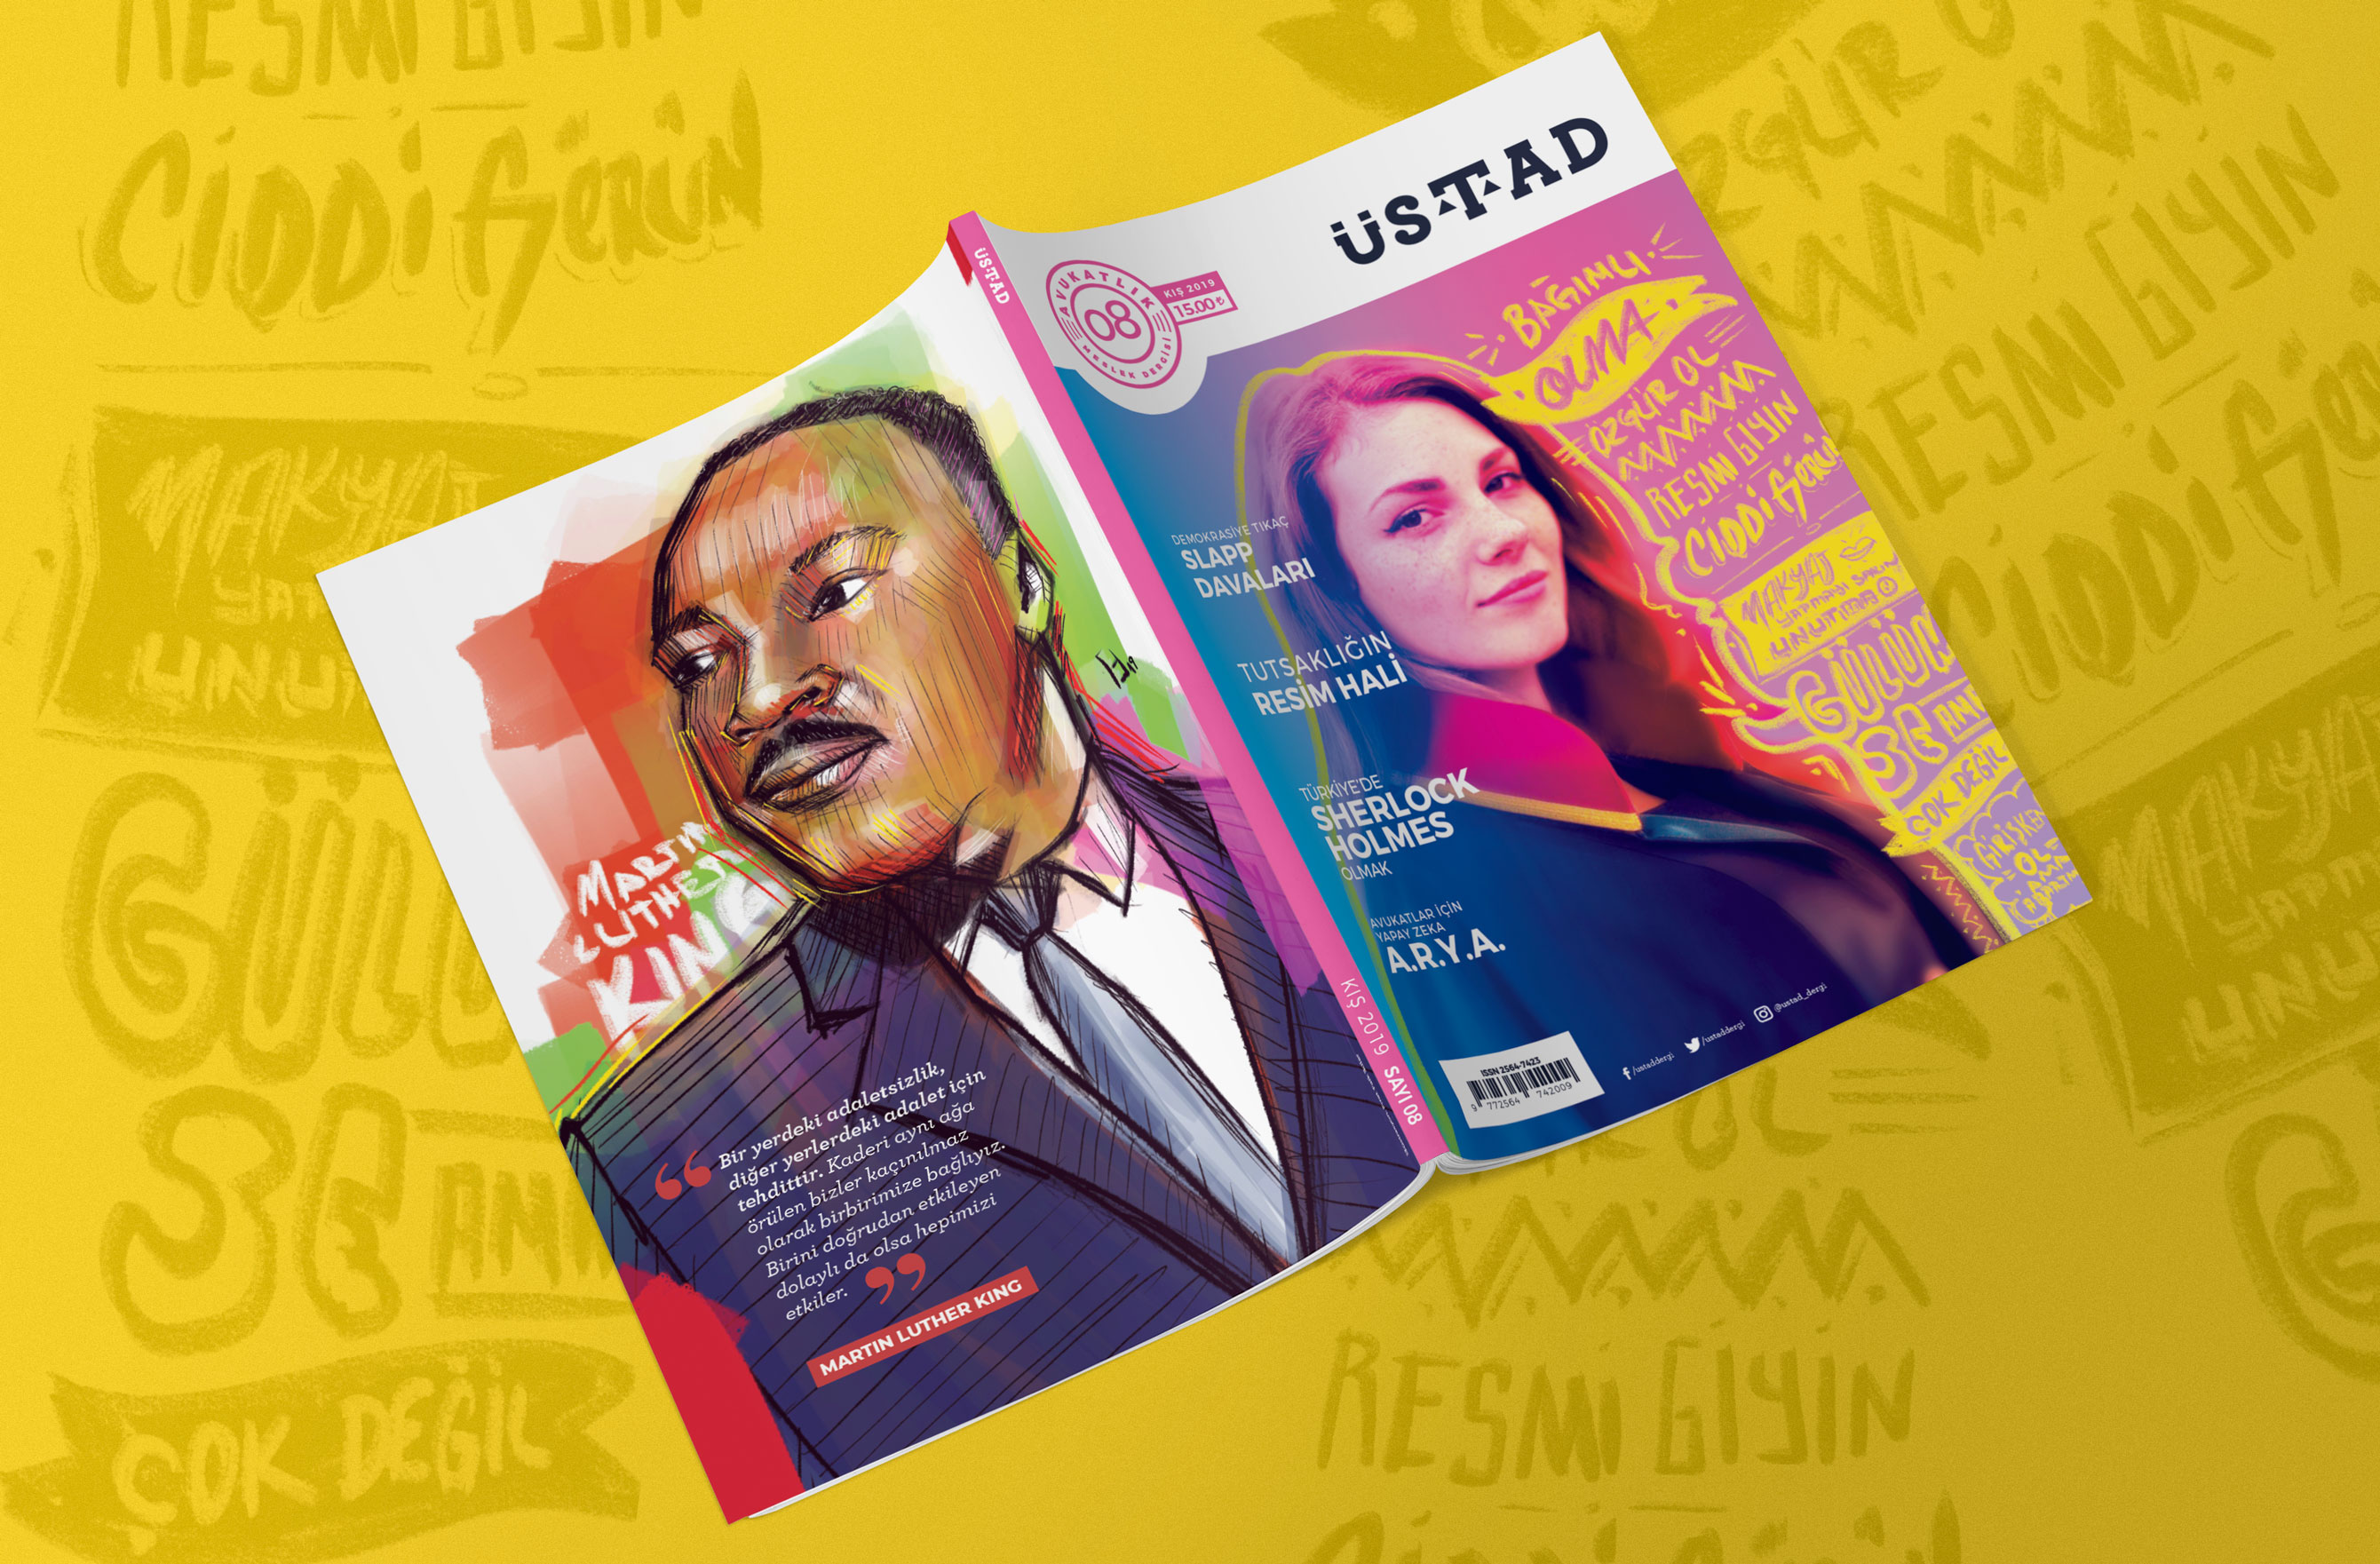 8th issue of Üstad Magazine